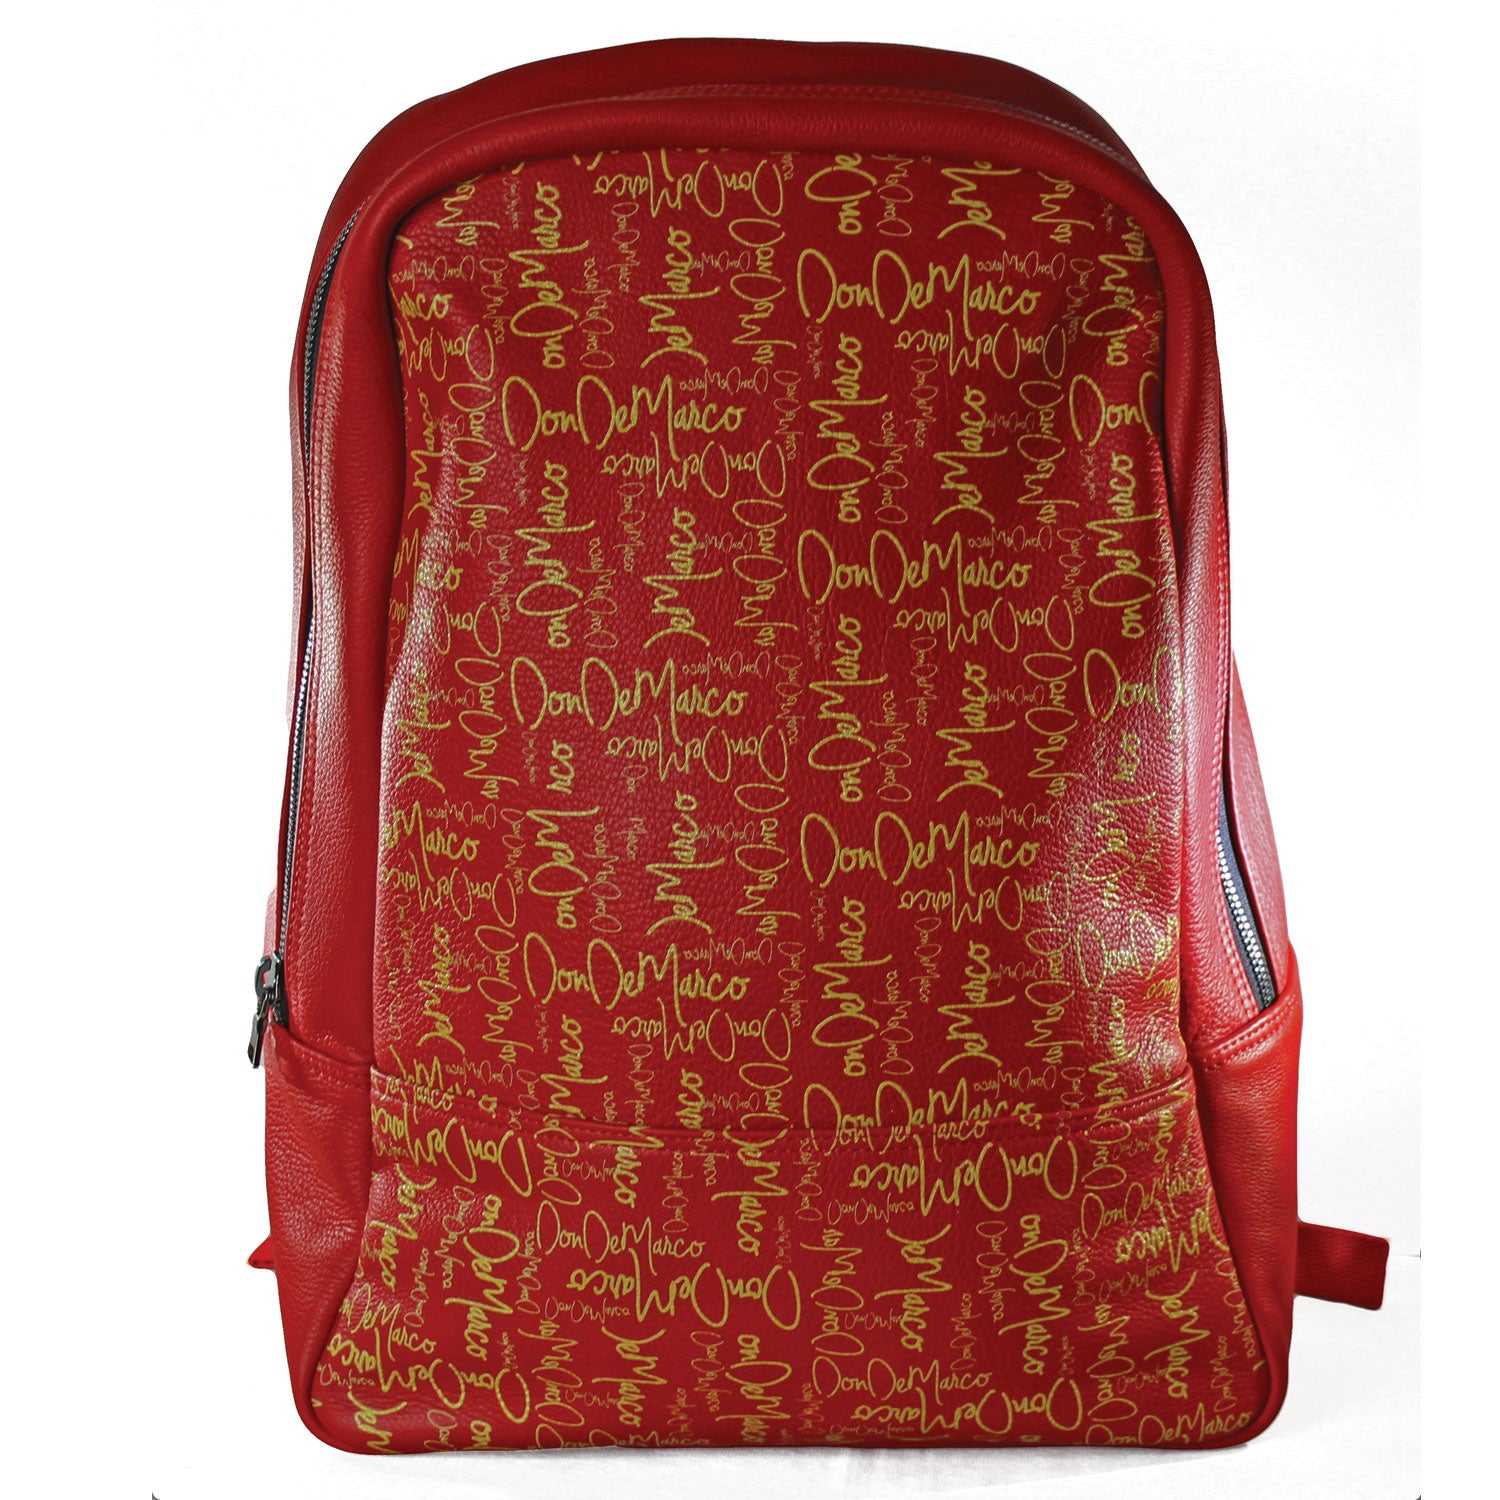 DonDeMarco Monogram Backpack